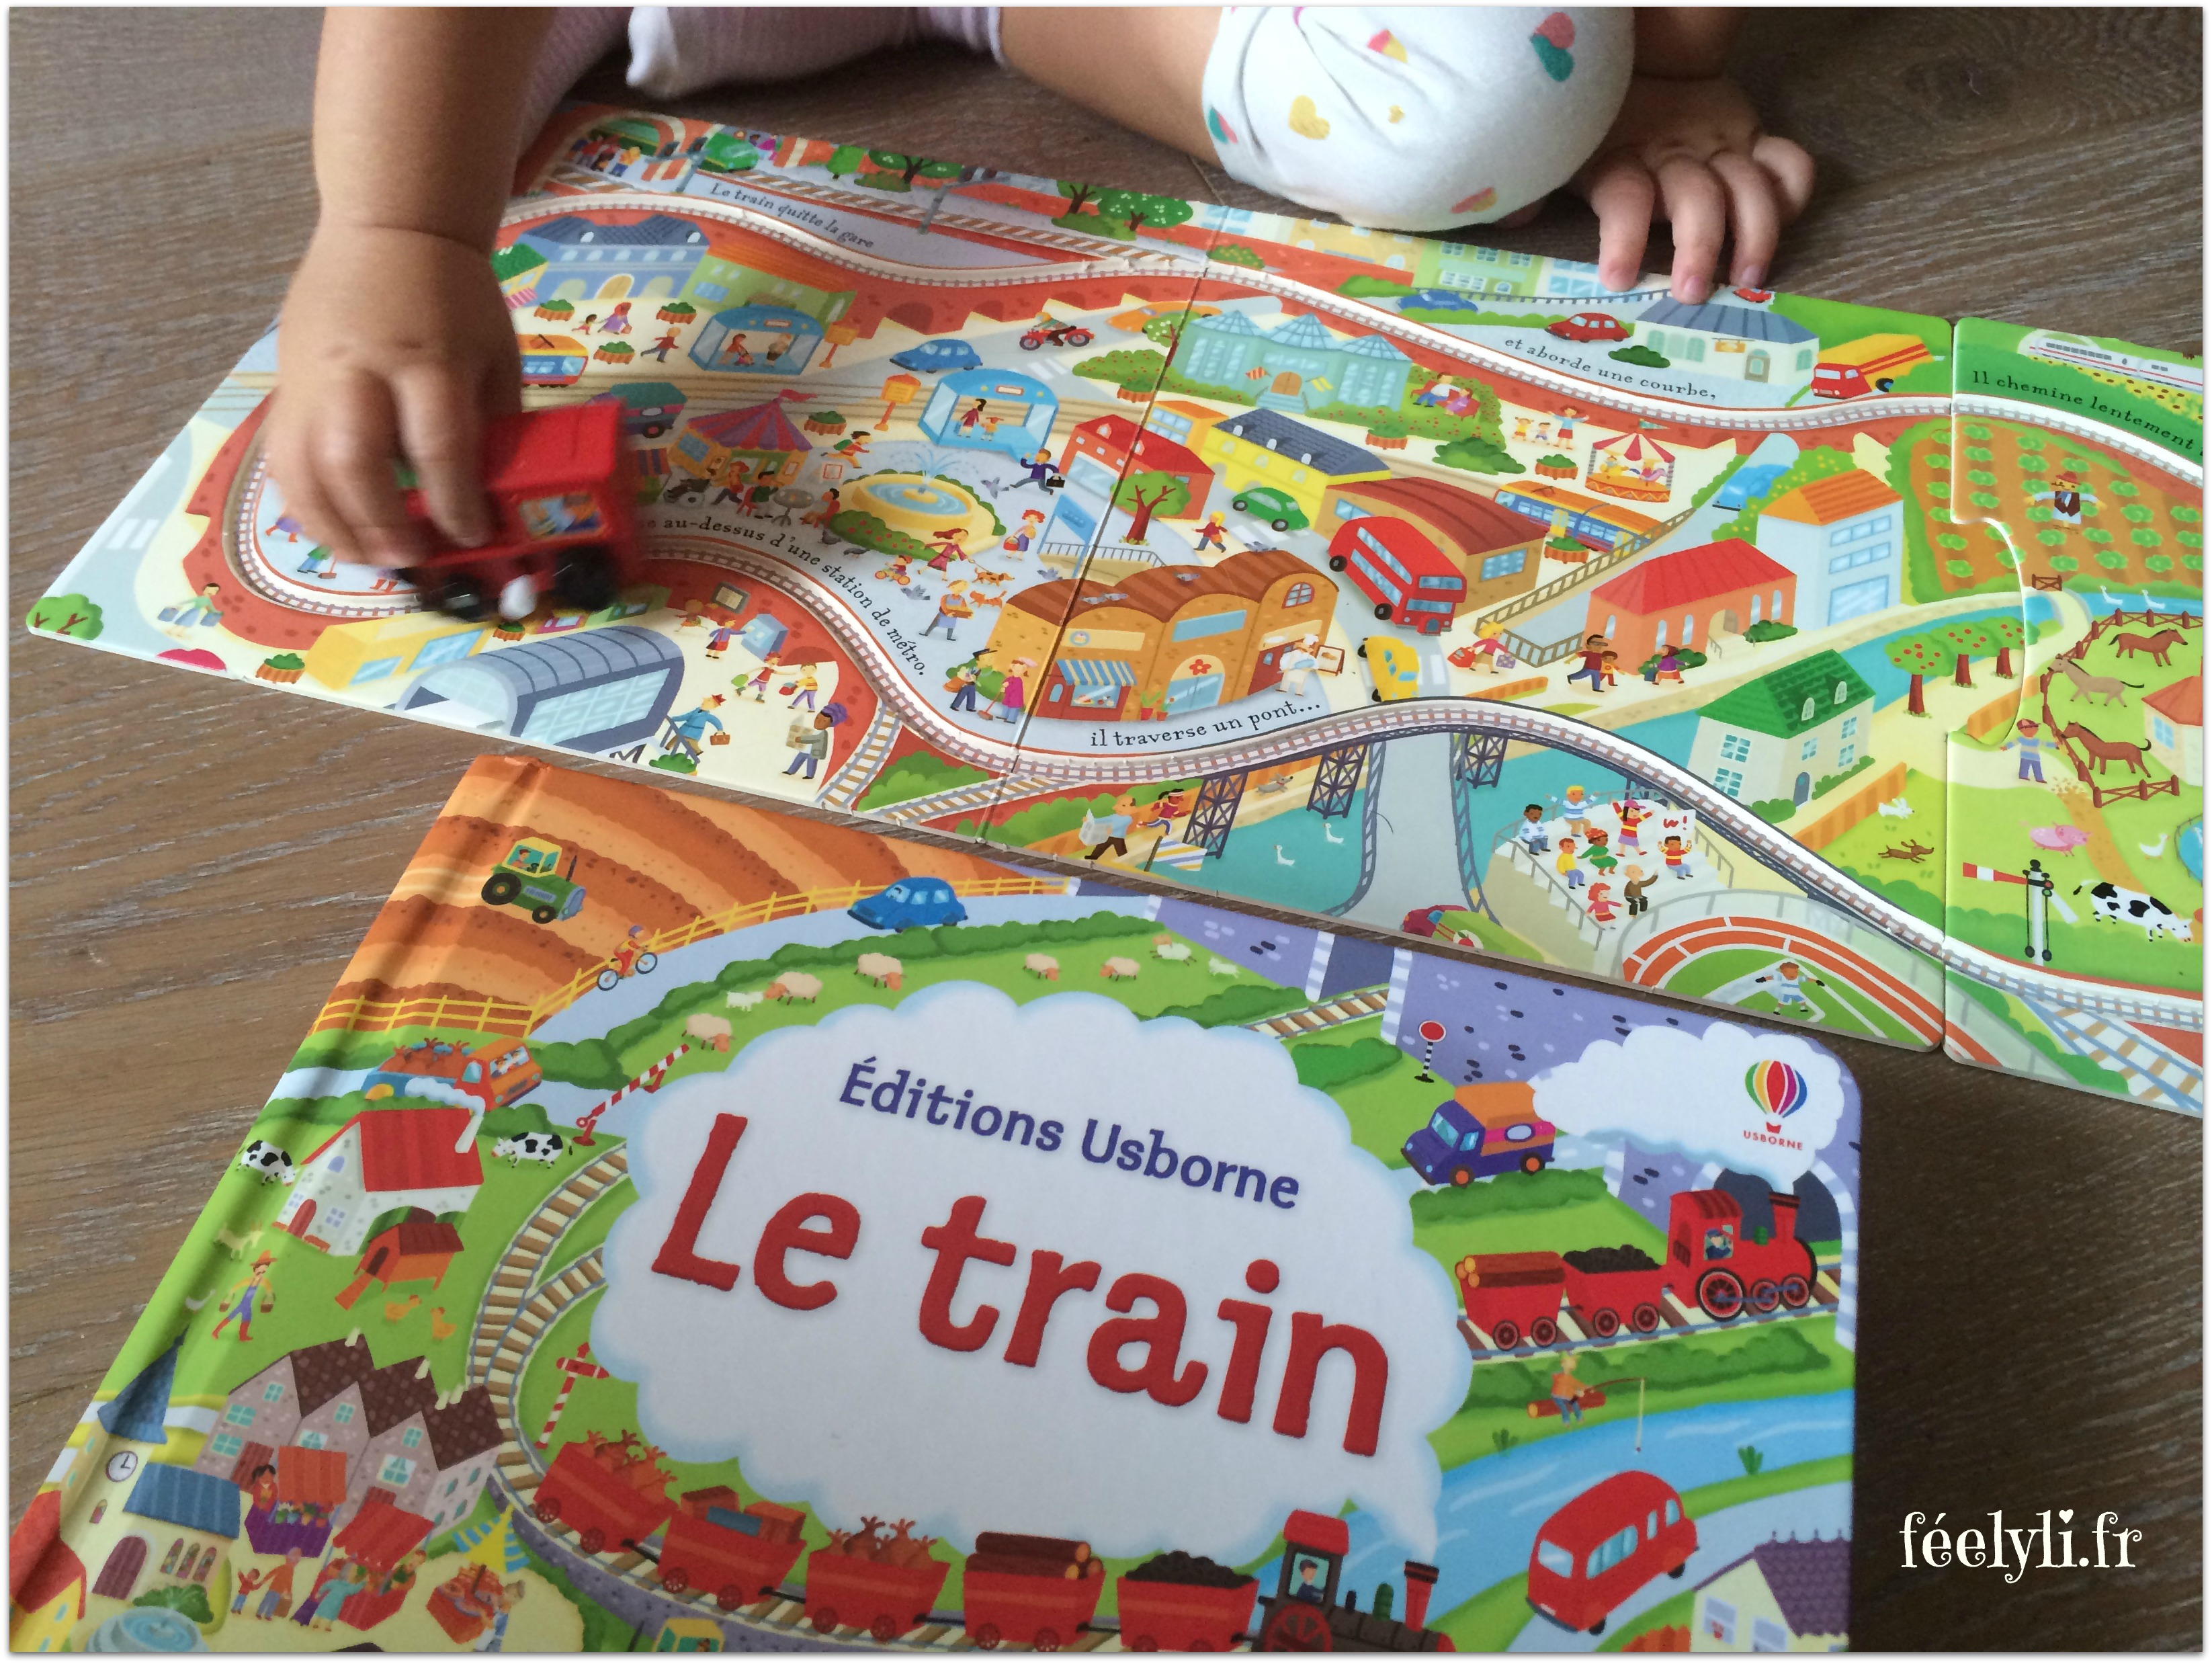 le train usborne 2